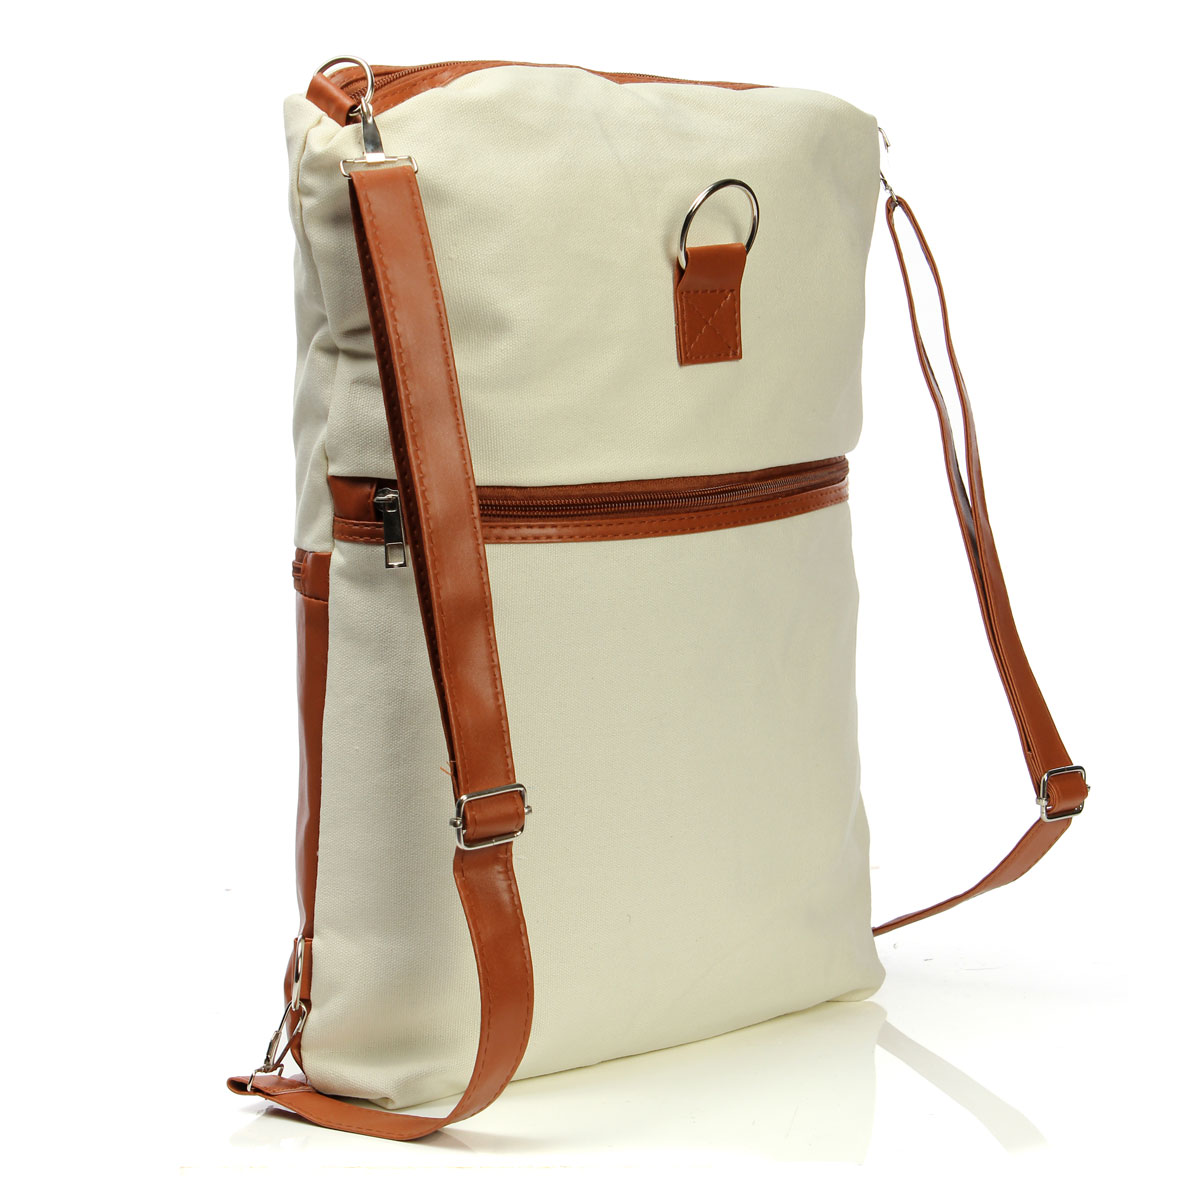 Luxury  Shoes Amp Accessories Gt Men39s Accessories Gt Backpacks Bags